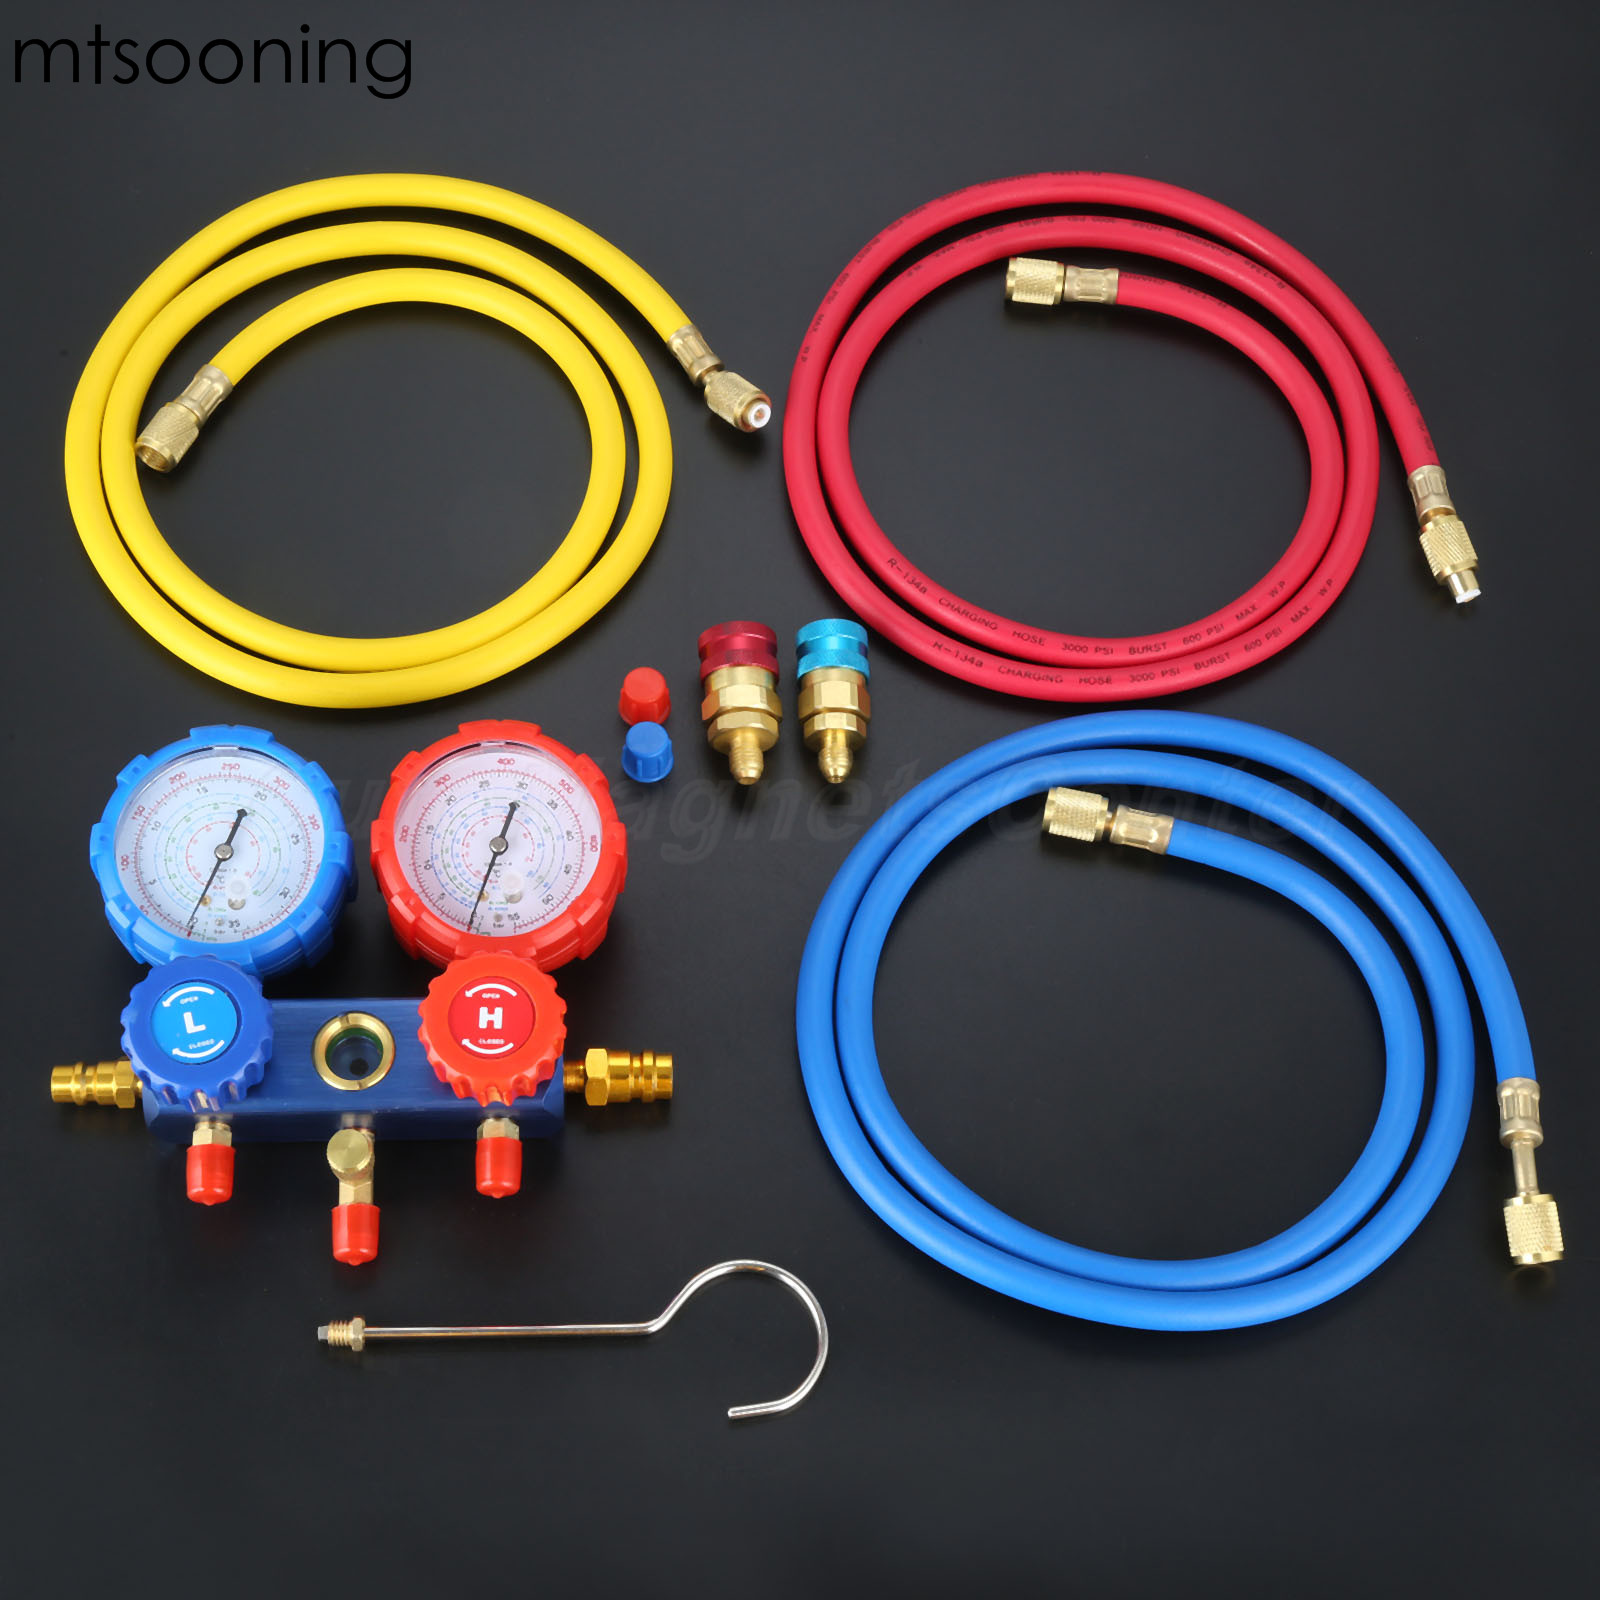 mtsooning R134a R404a HVAC AC Refrigerant Manifold Gauge Set and 3pcs Charging Hose for Automobile A/C Air Conditioning цена